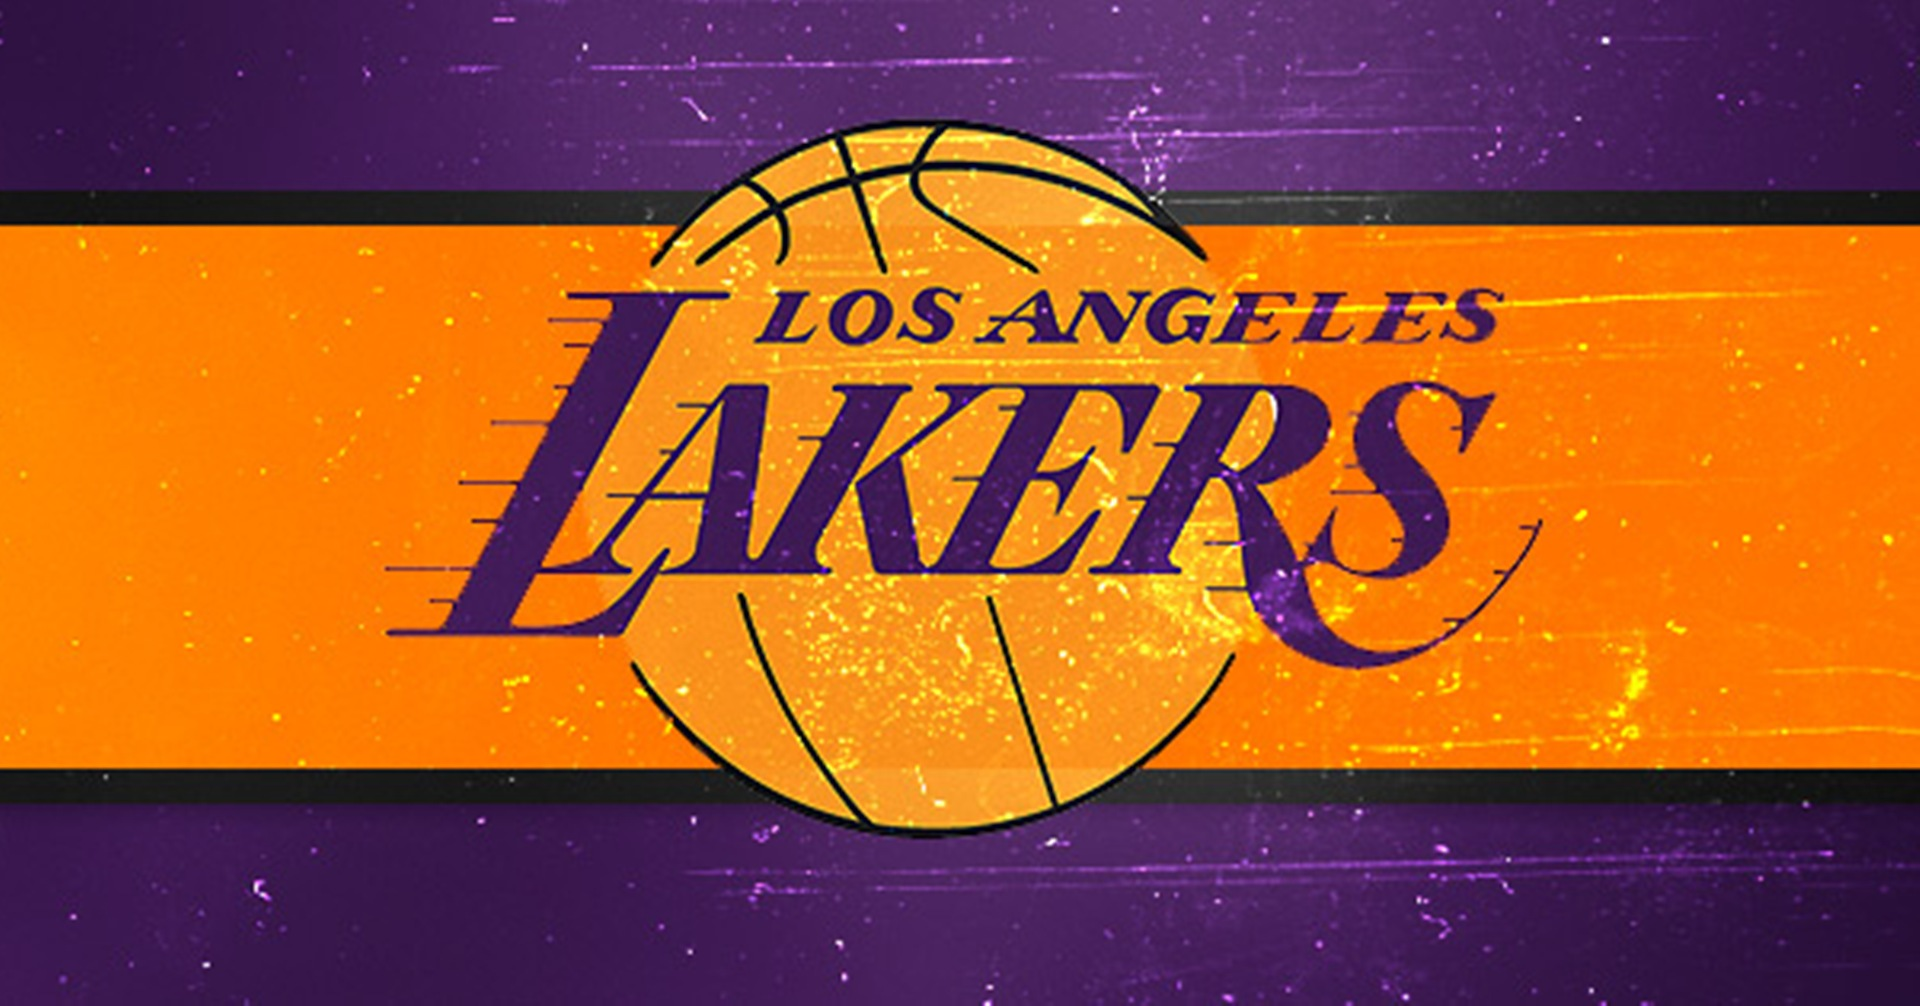 Lakers Basketball Wallpaper - Los Angeles Lakers Background , HD Wallpaper & Backgrounds